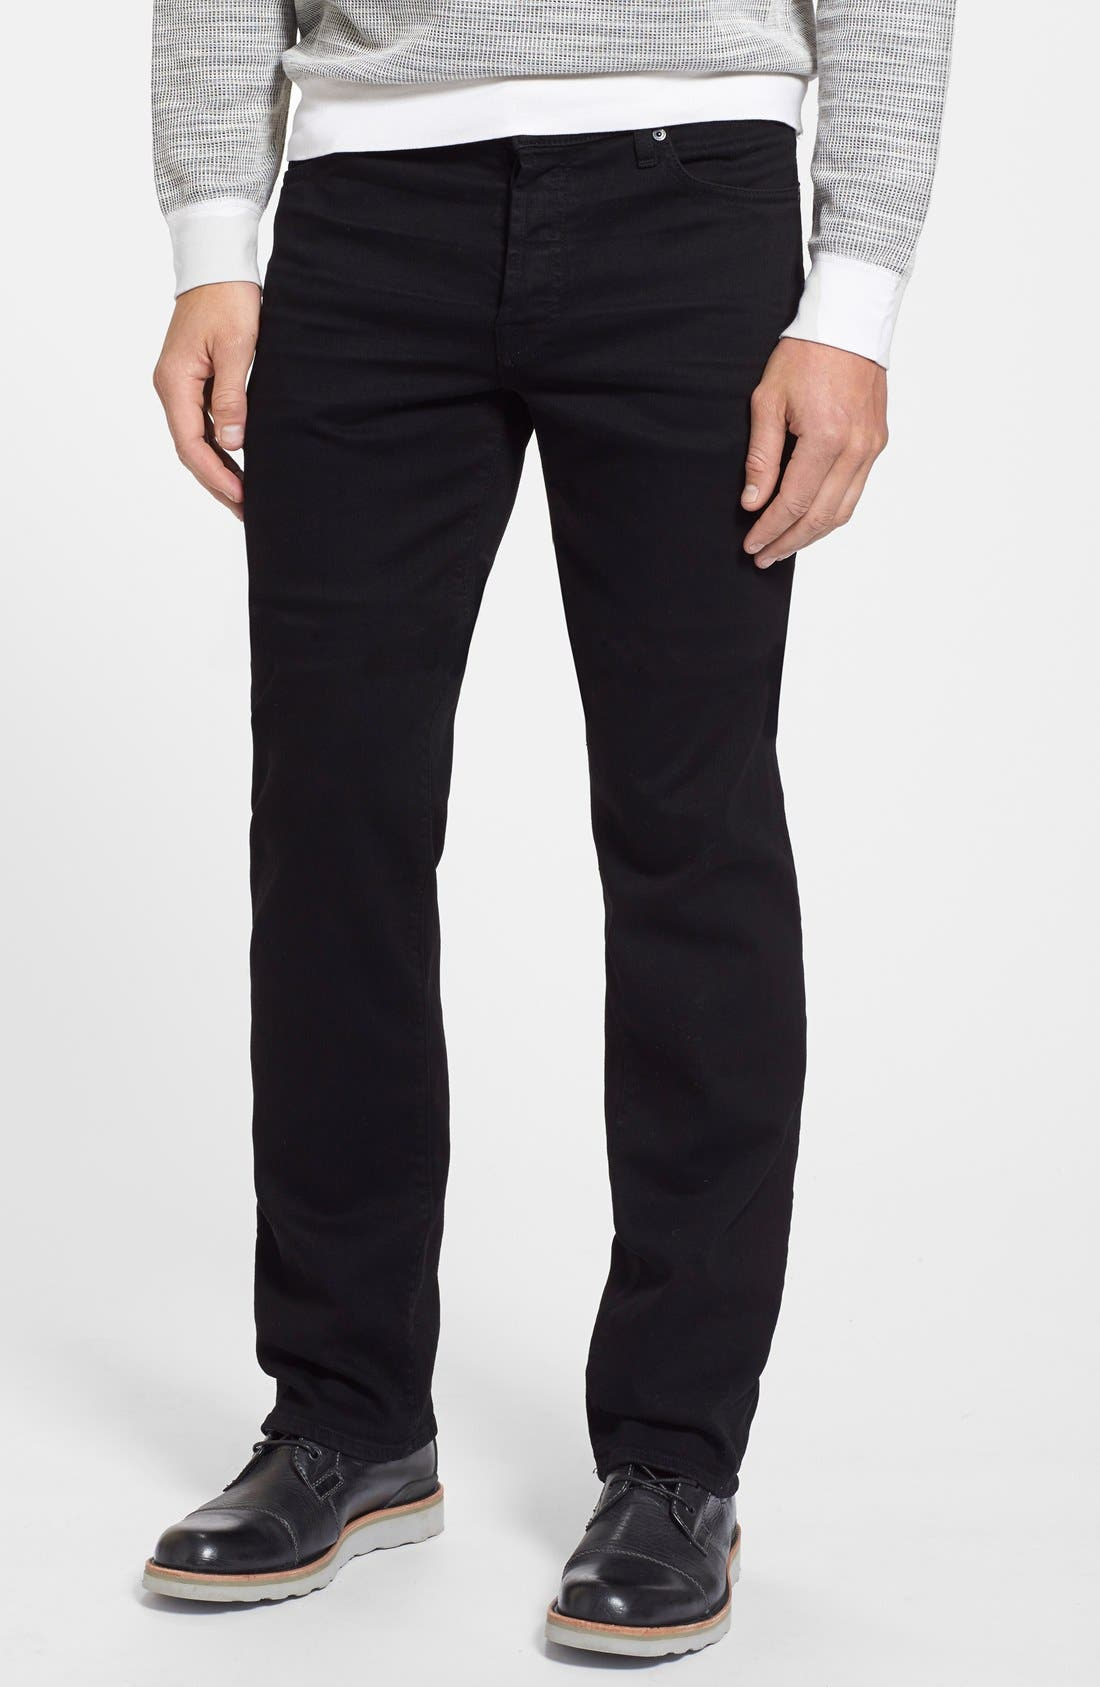 The Standard - Luxe Performance Straight Leg Jeans,                             Main thumbnail 1, color,                             004